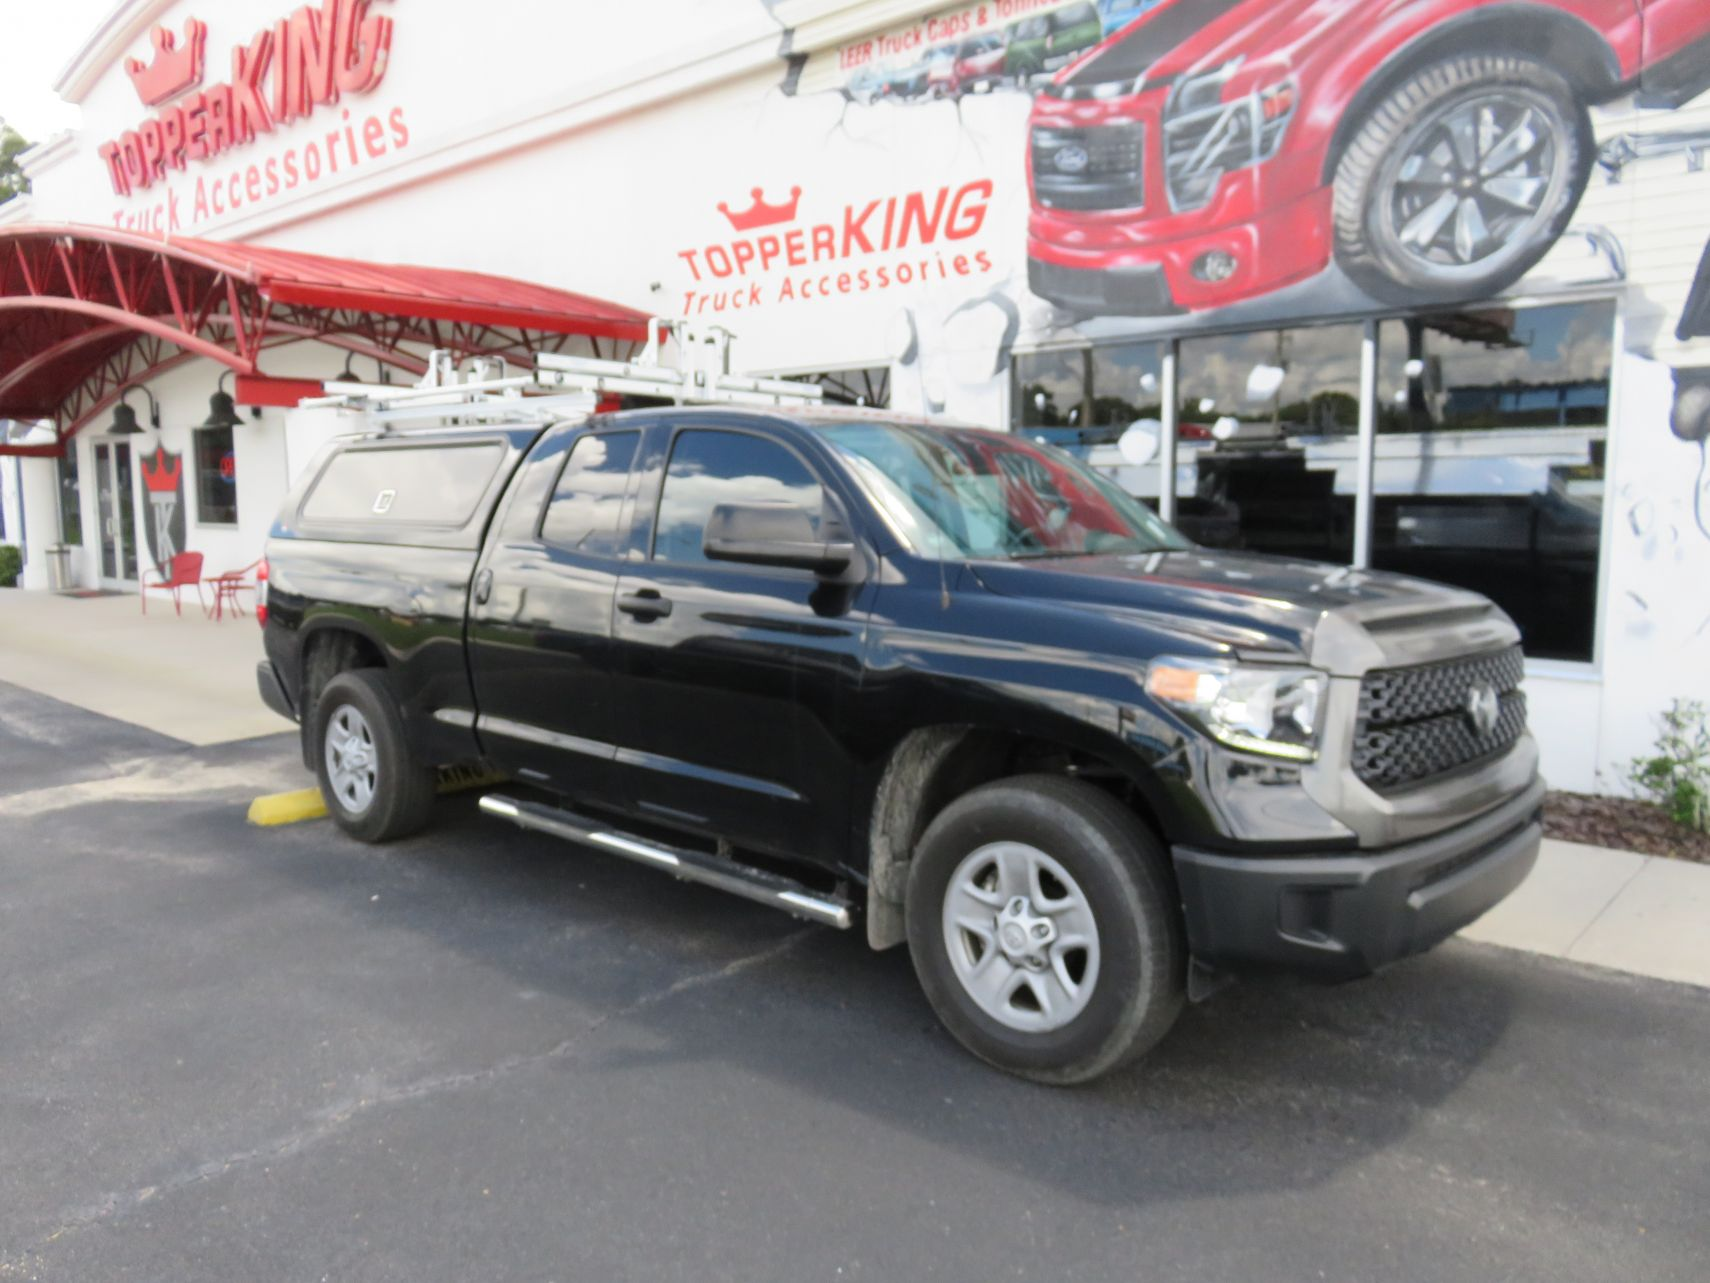 2018 Toyota Tundra with LEER 100RCC, Roof Racks, Side Access, Nerf Bars, Hitch by TopperKING Brandon 813-689-2449 or Clearwater 727-530-9066.